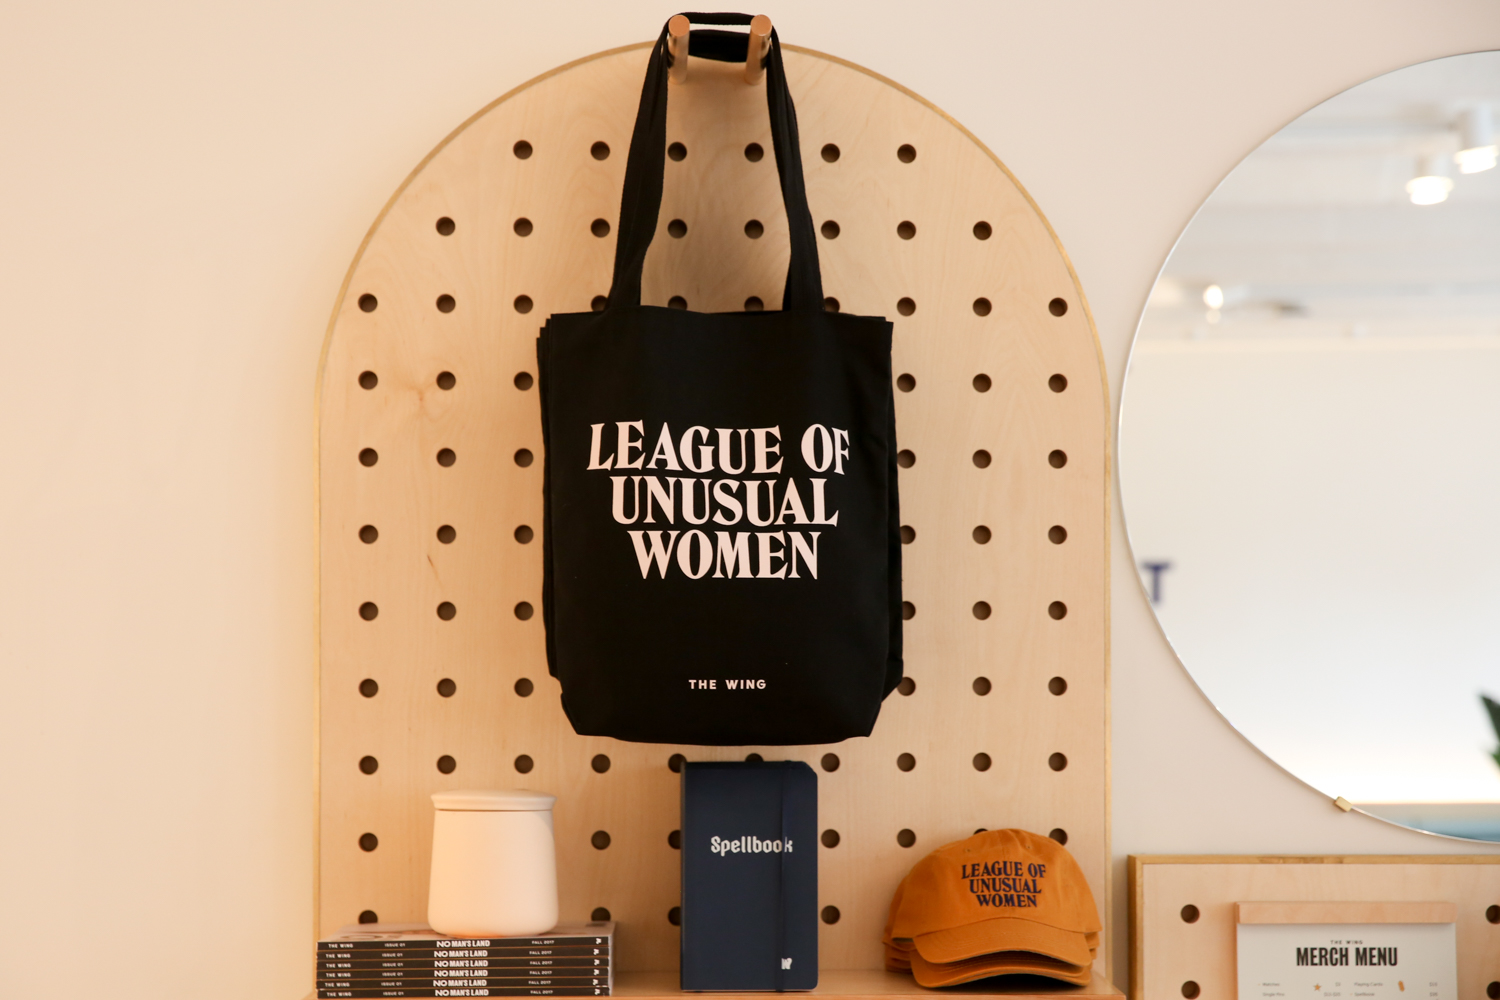 """We heard from a lot of women in D.C. after we opened our first space saying they loved the concept and that they would love to have it in the District,"" said The Wing's co-founder and CEO Audrey Gelman."" ""I've lived in D.C. twice before and my business partner [co-founder and COO Lauren Kassan] went to GW so we were both familiar with the city and had networks here. It just made sense to expand to D.C."" (Image: Amanda Andrade-Rhoades/ DC Refined)"